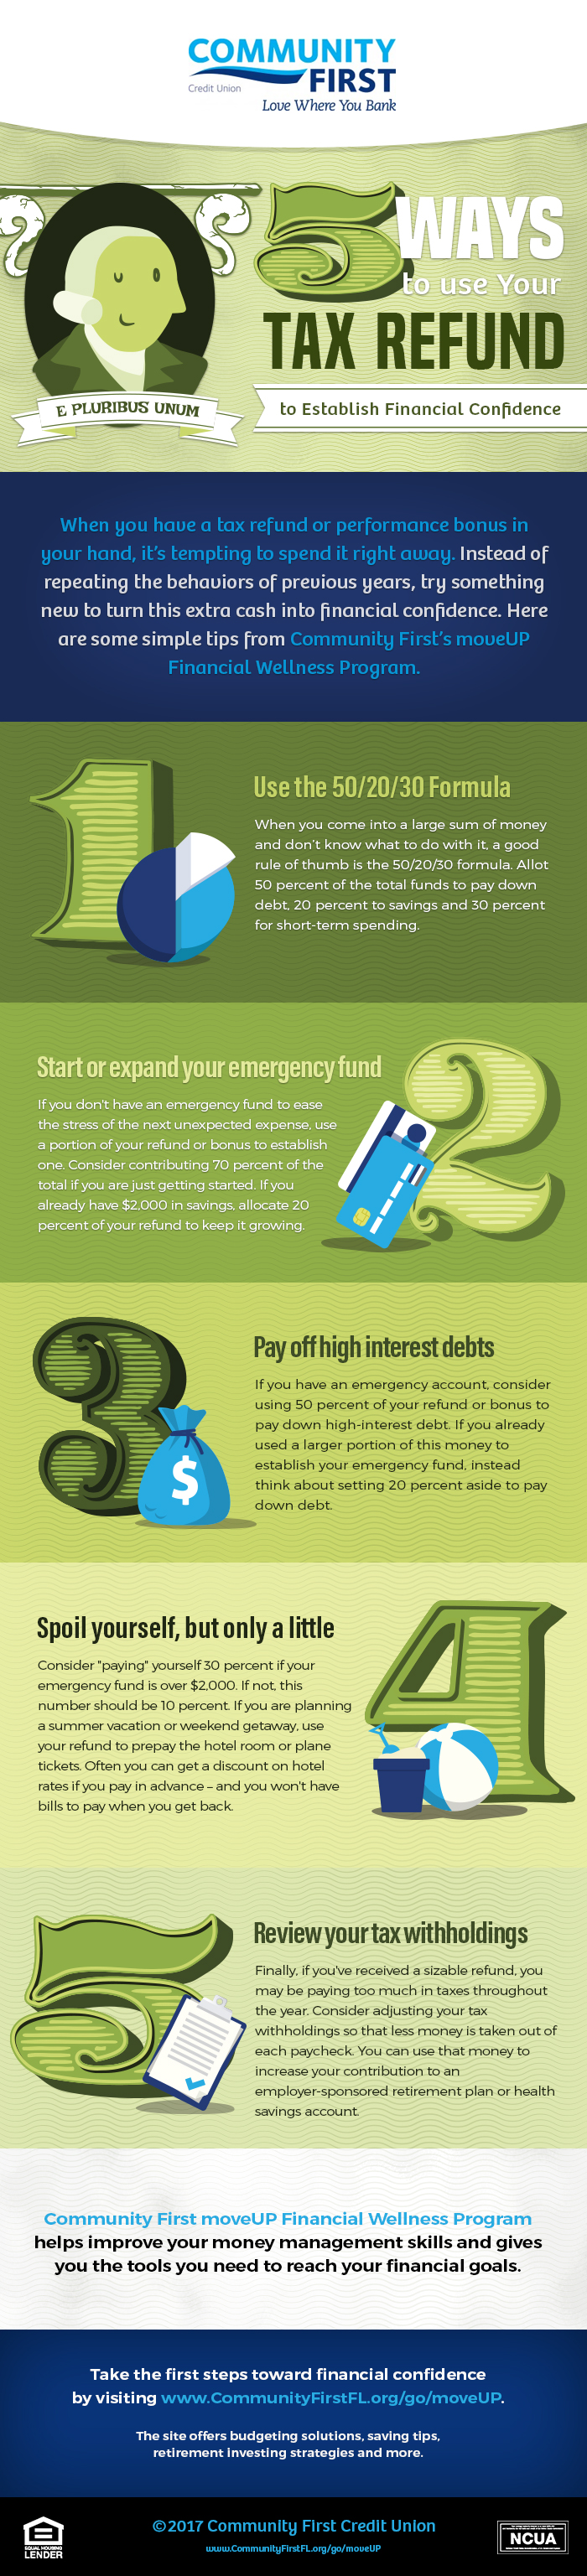 5 ways to use your tax refund infographic, 1 use the 50/20/30 formula, 2 start an emergency fund, 3 pay off high interest debts, 4 spoil yourself only a little, 5 review your tax withholdings